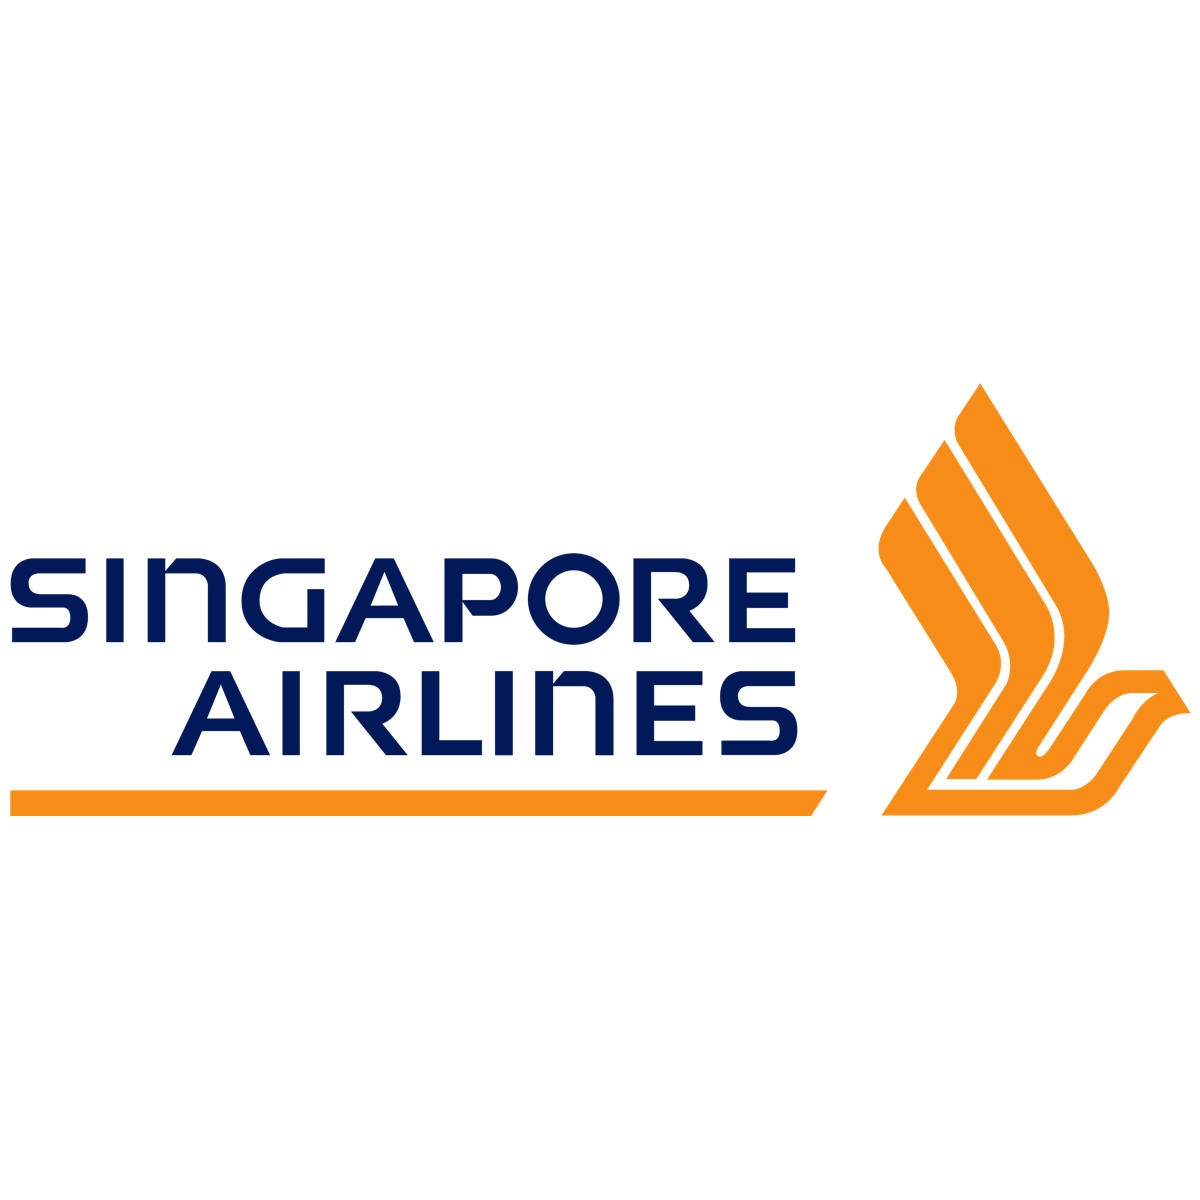 Singapore Airlines - UOB Kay Hian Research 2018-07-31: Analyst Briefing Takeaways ~ Stalled By Fuel Cost Escalation